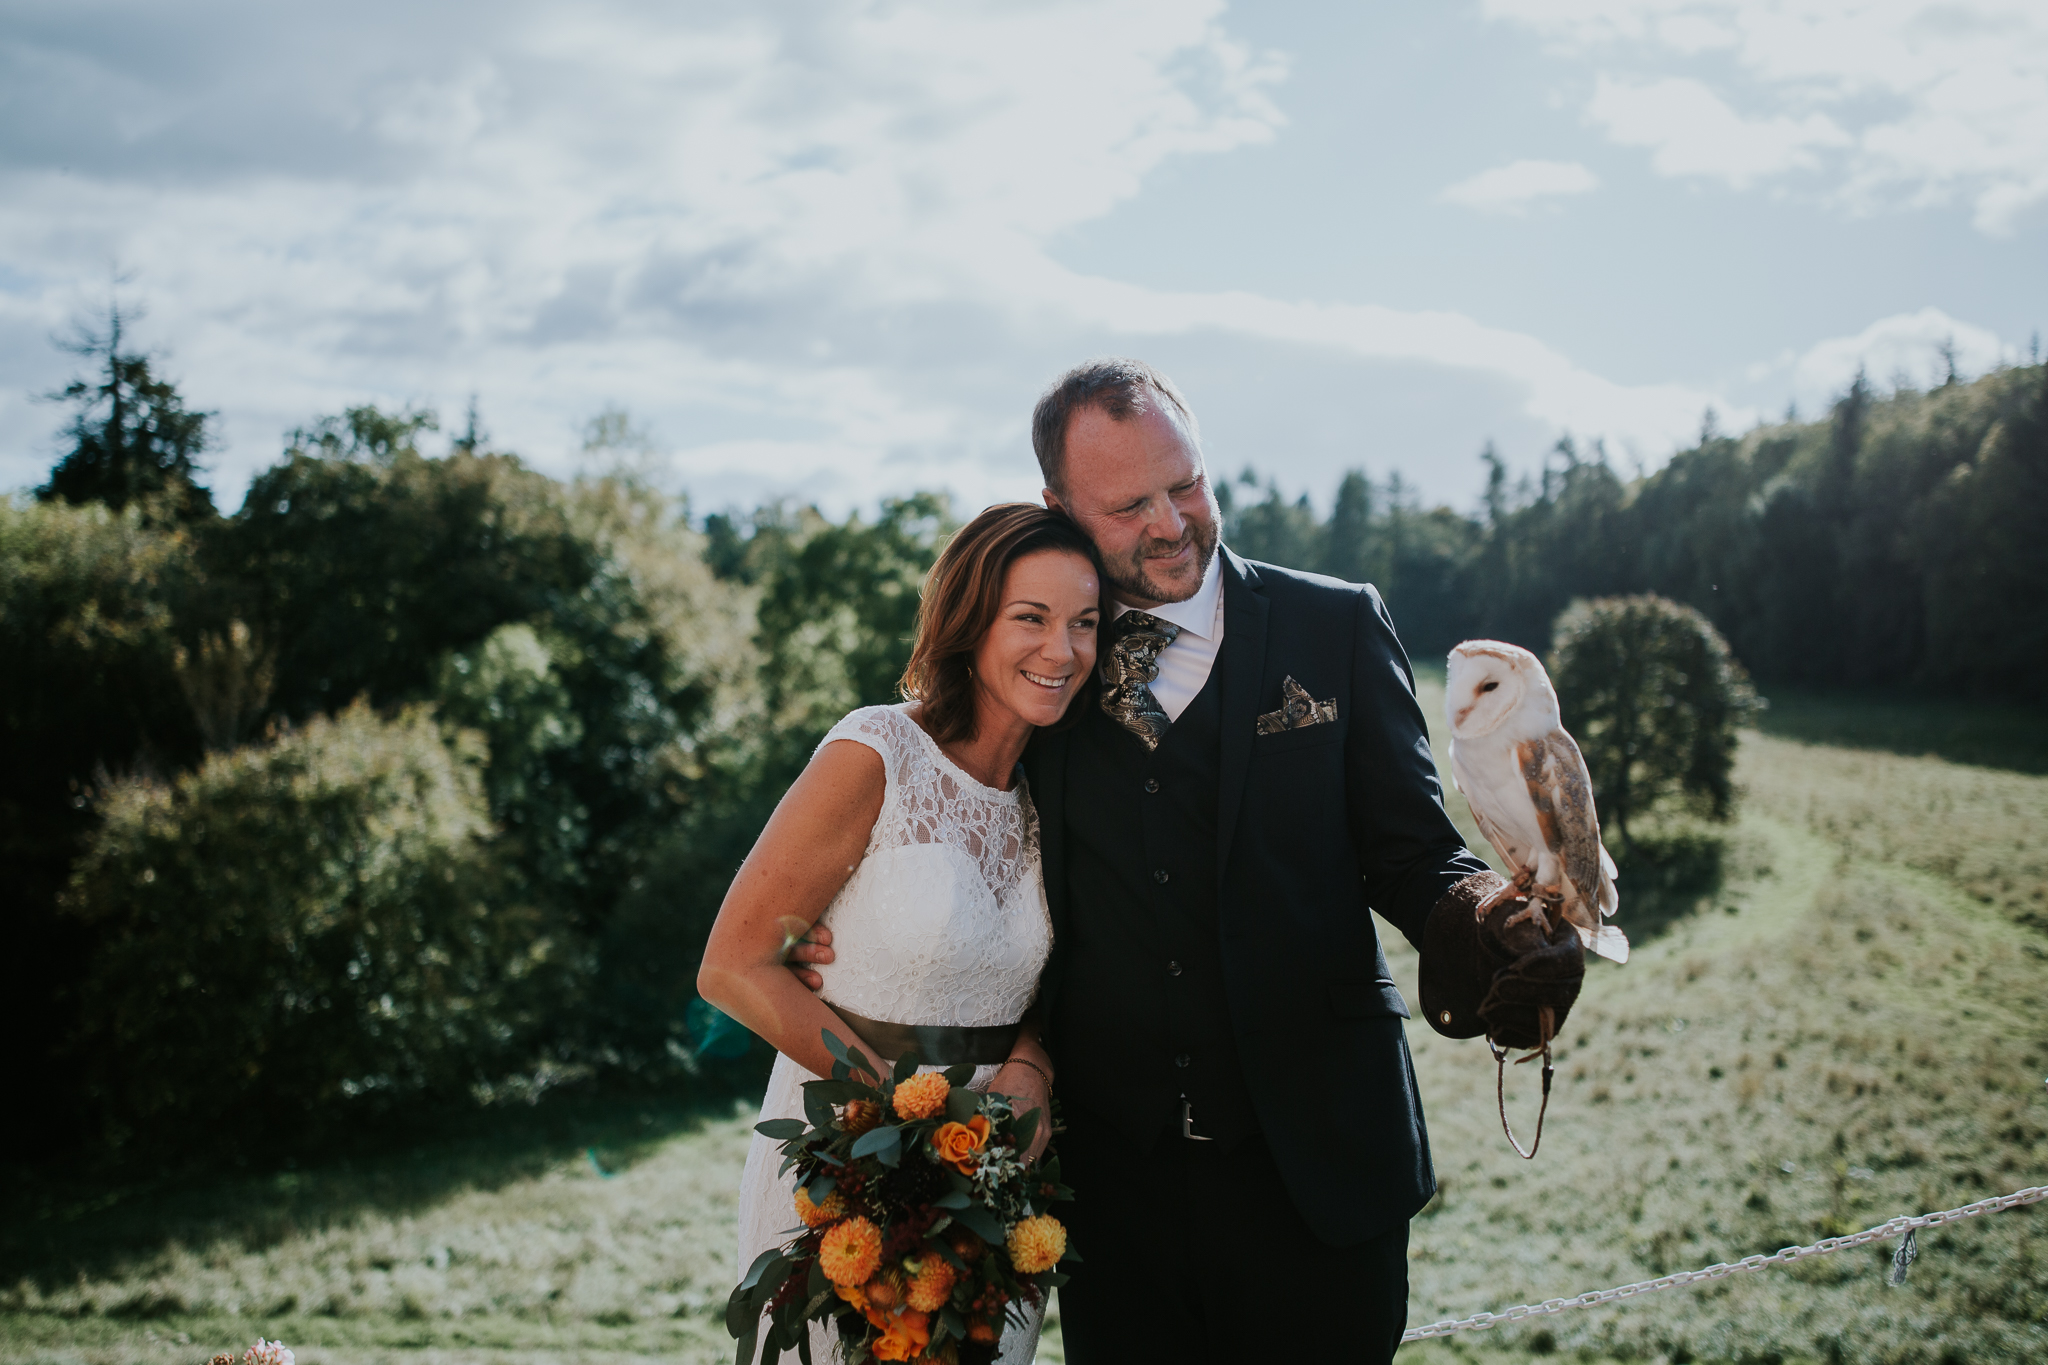 The bride and groom with the owl.